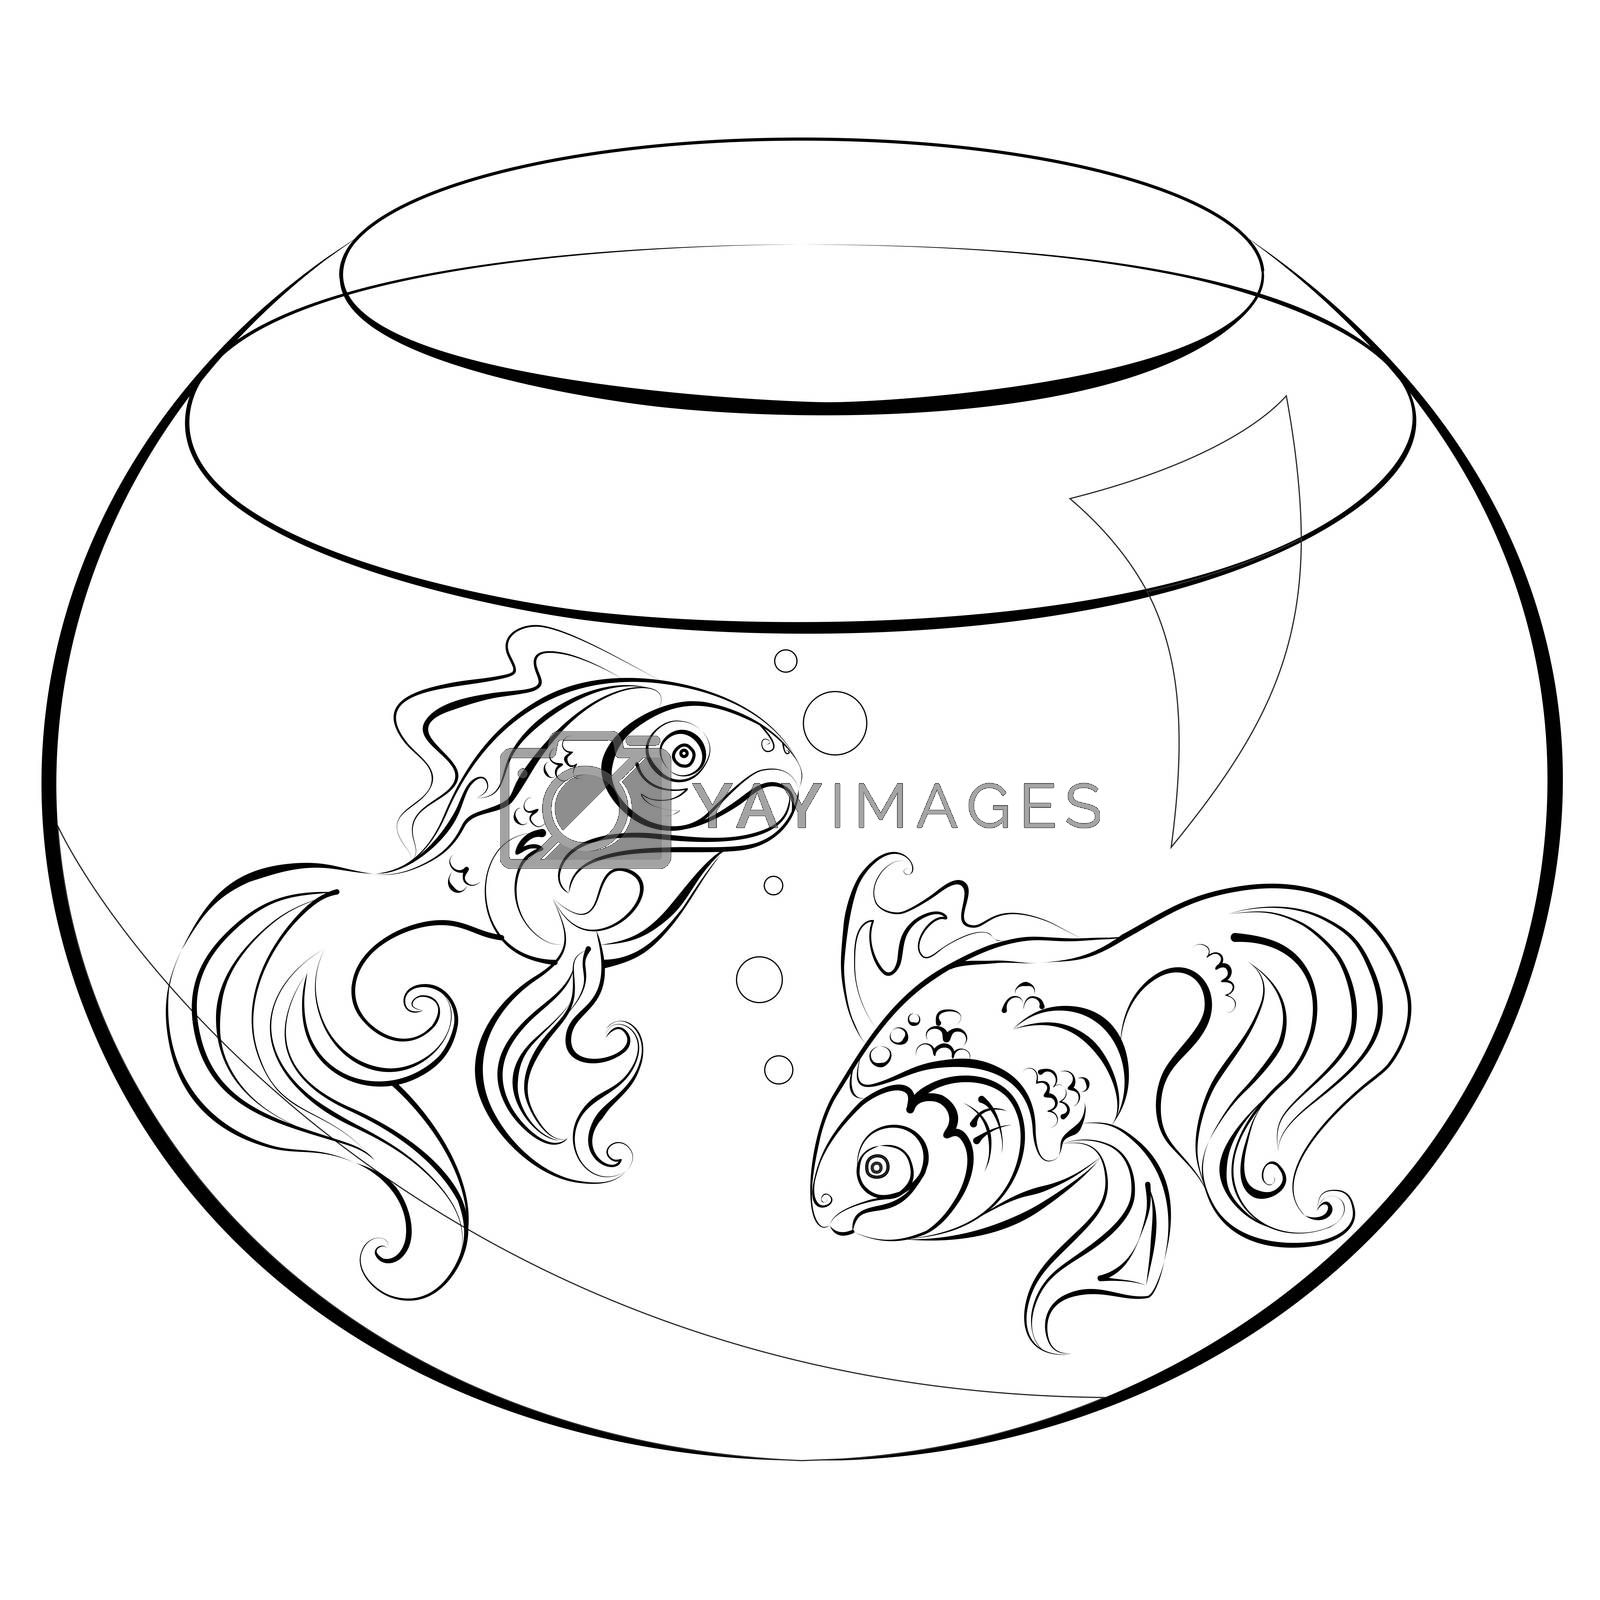 Illustration no fill color - two stylized goldfish in an aquarium